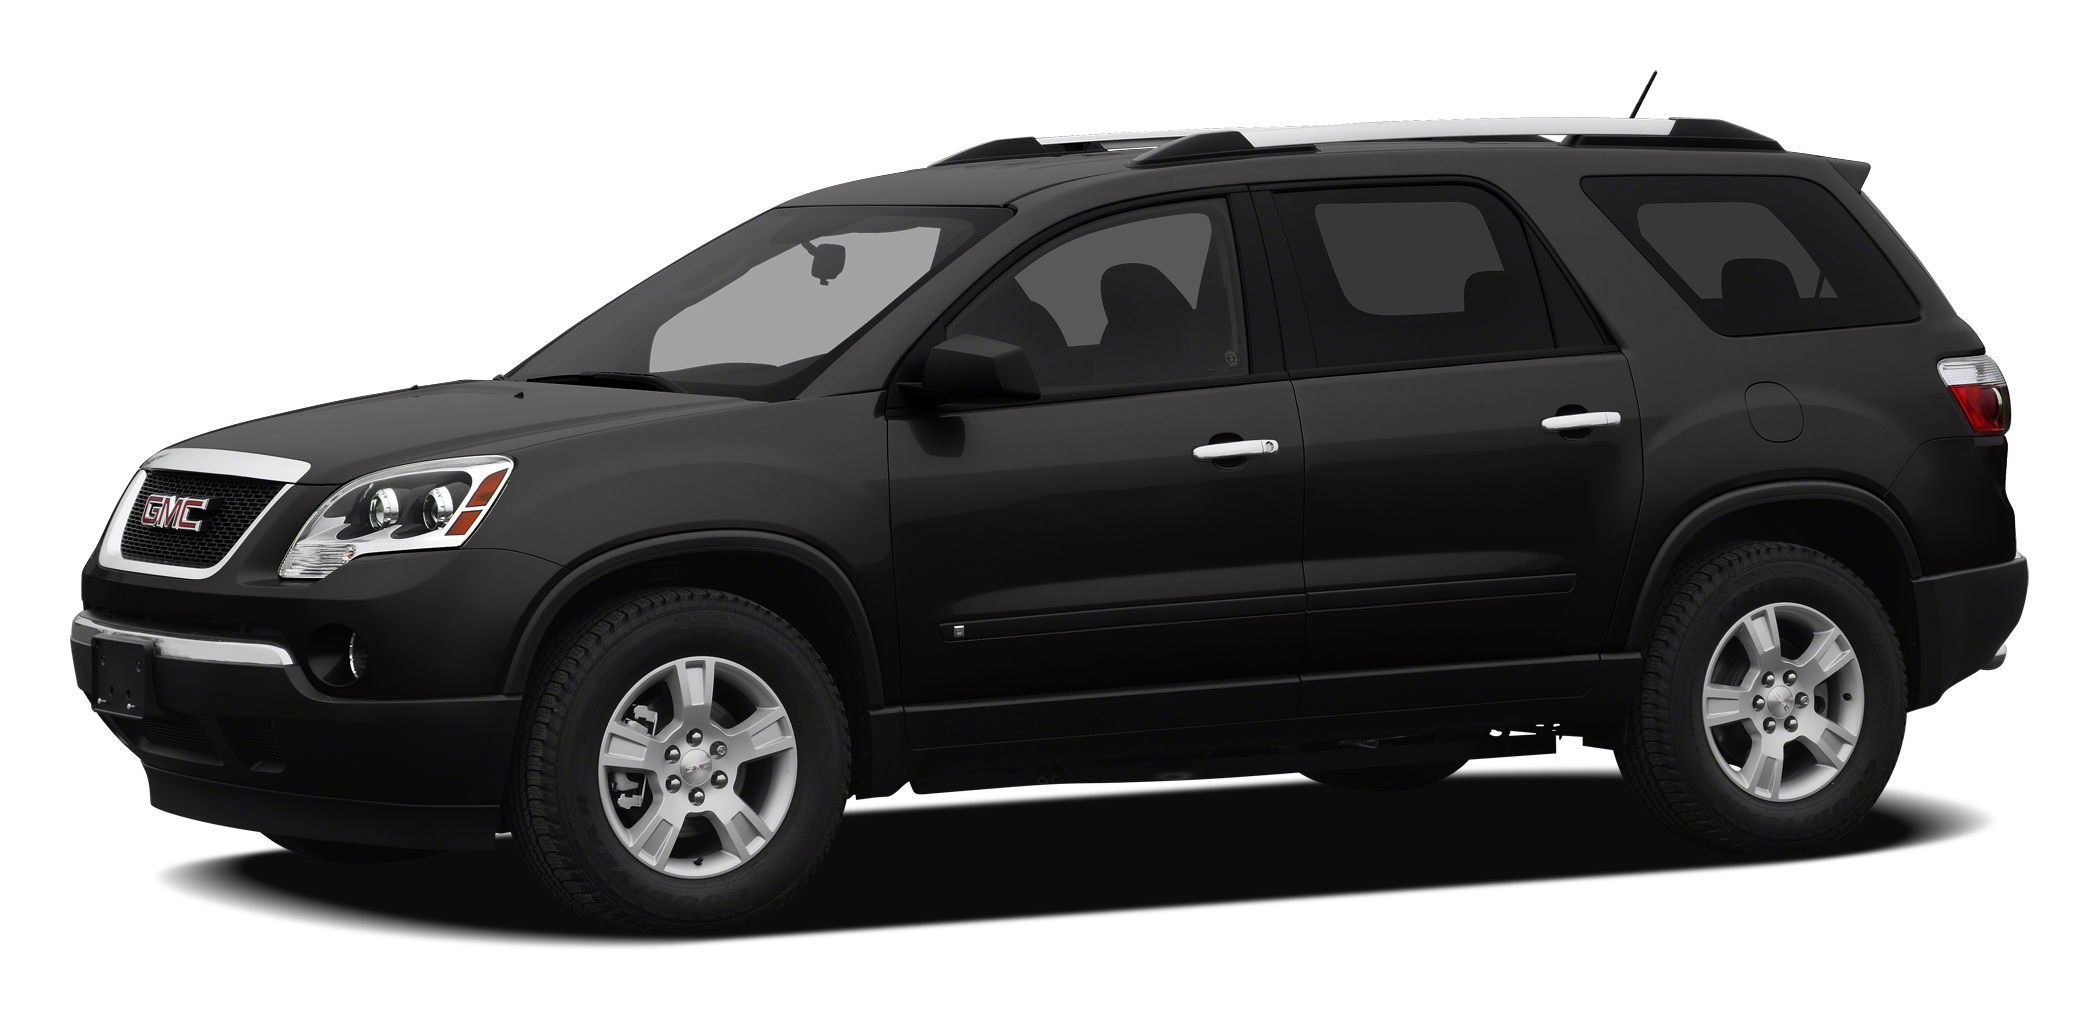 2012 GMC Acadia SLE This vehicle is Located  55 Fortin Dr in Woonsocket RI Call 855-714-3260 for